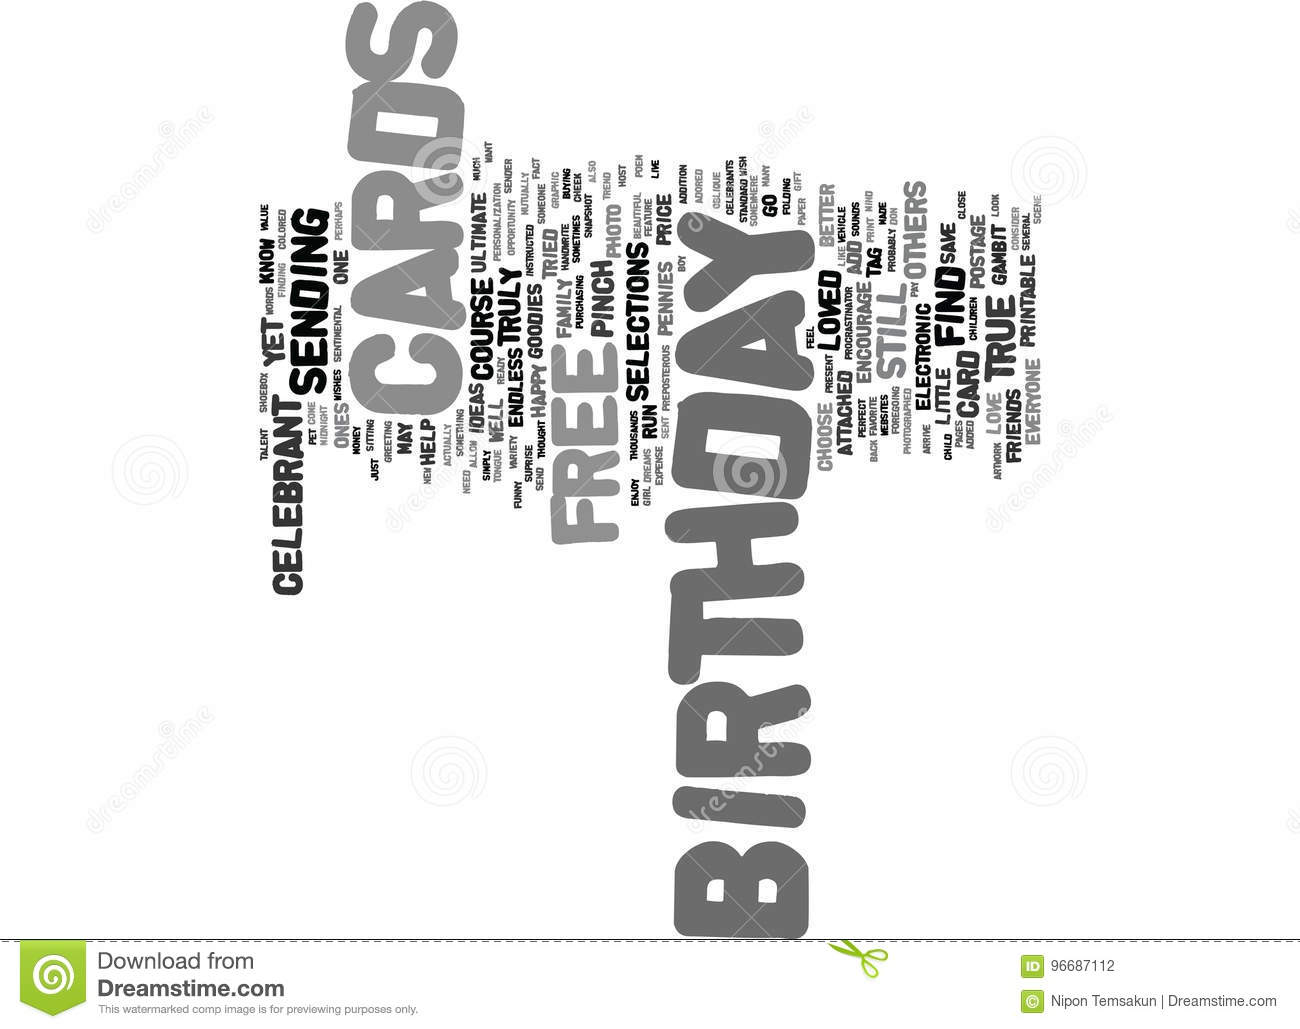 Free Birthday Cards Text Background Word Cloud Concept Illustration